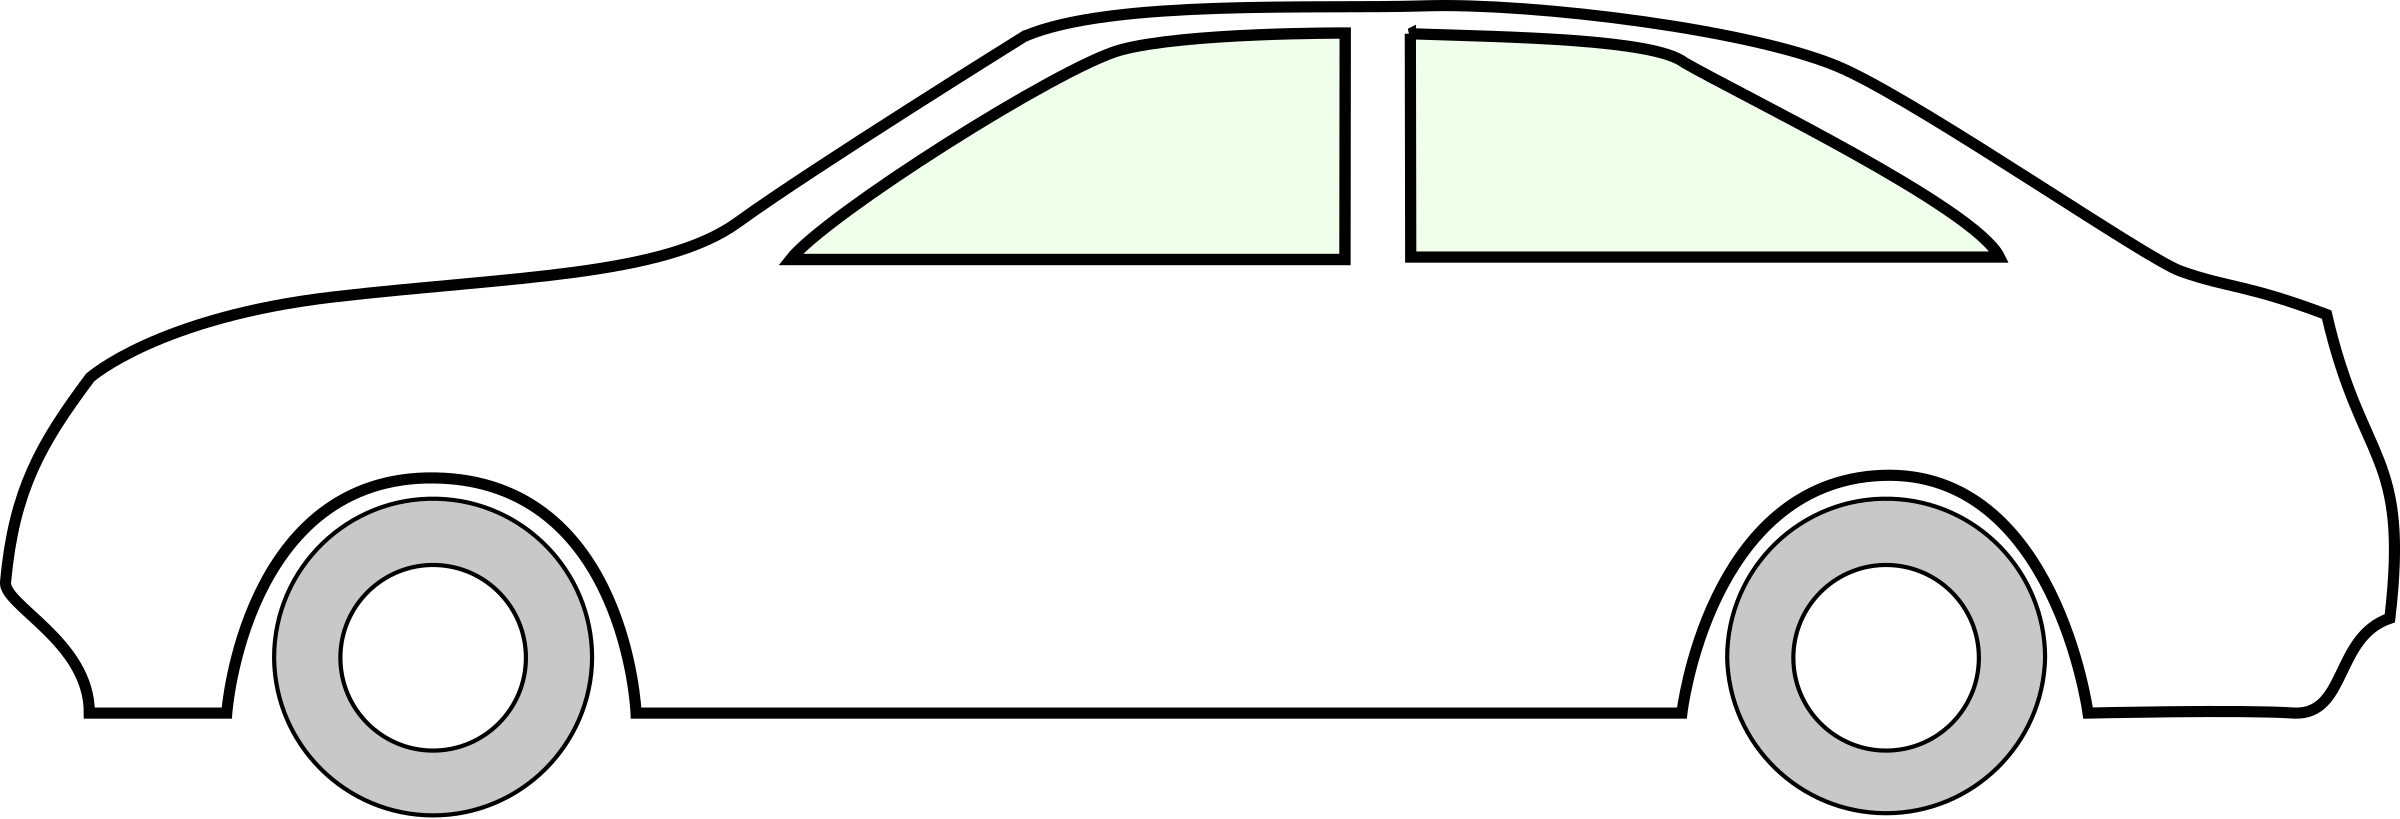 Side of a car clipart image black and white download Outline Of A Car (53+) image black and white download